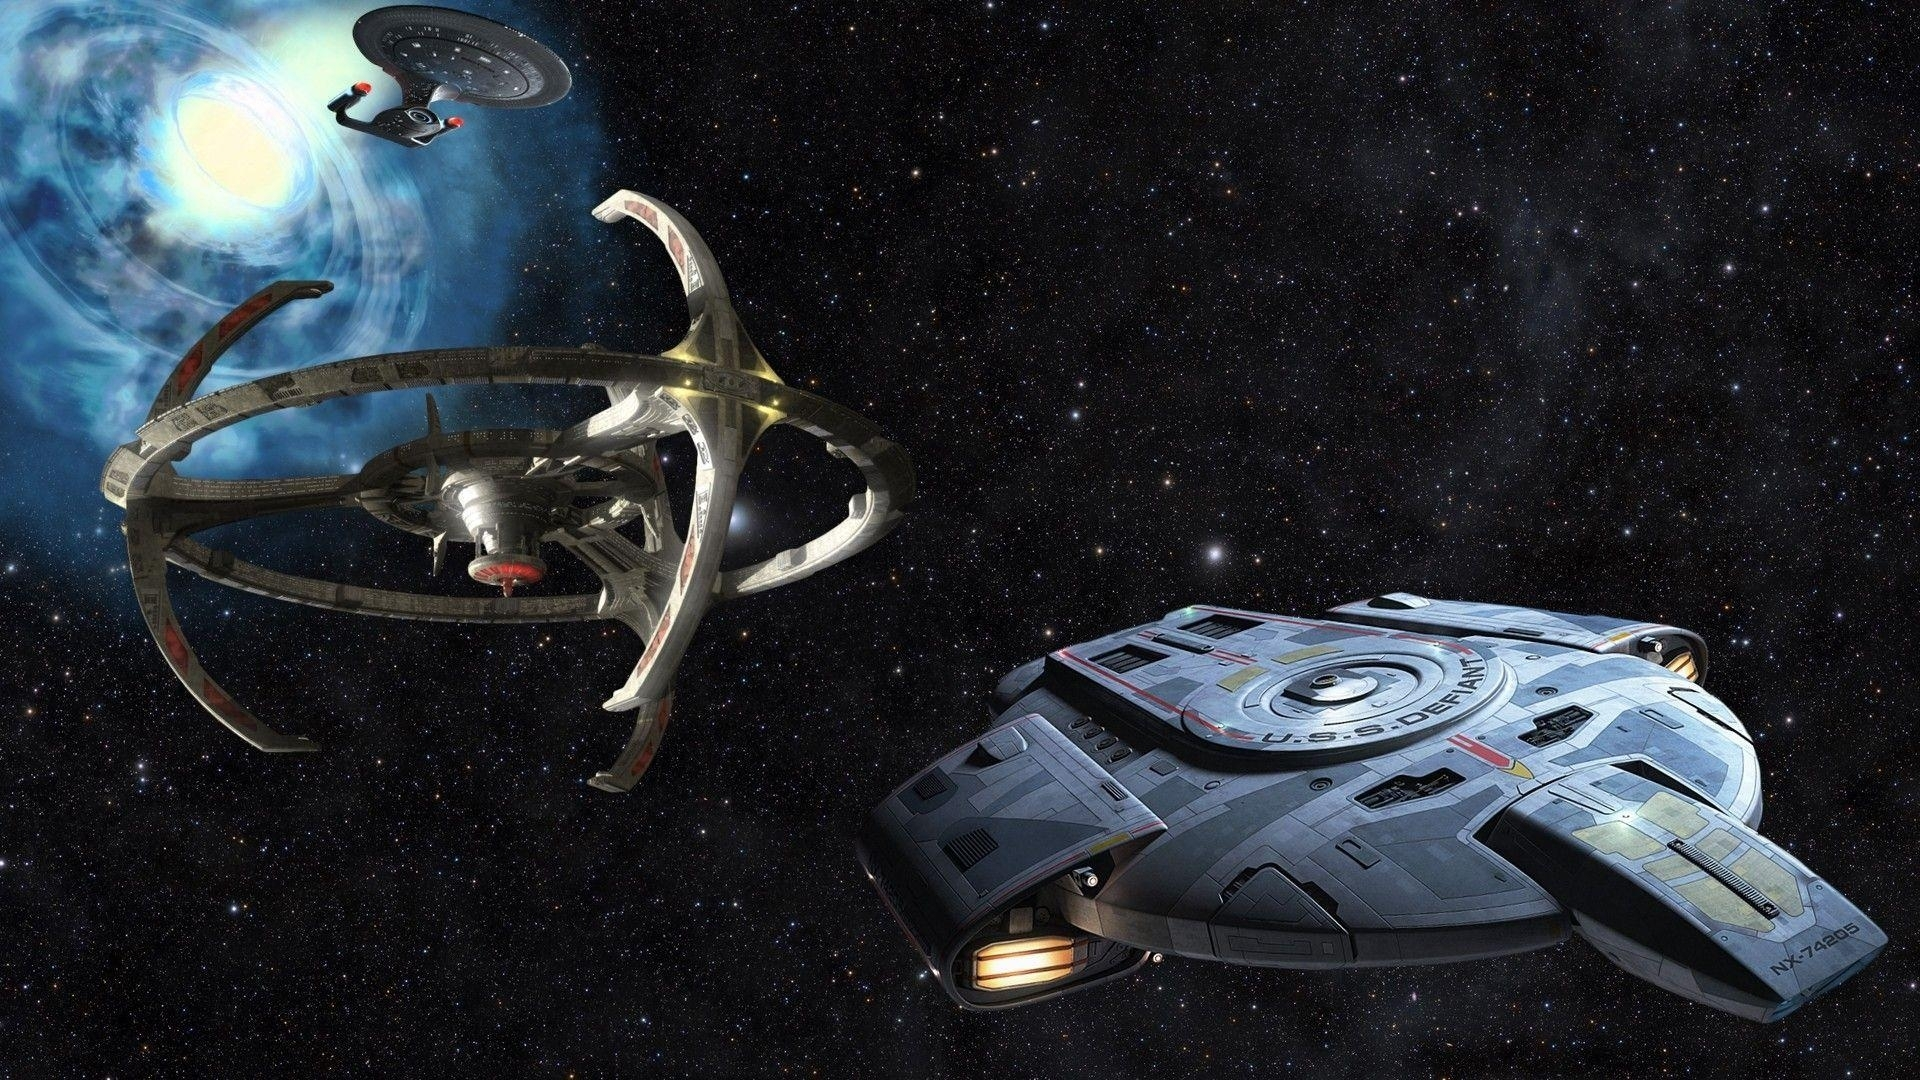 star trek: deep space nine wallpapers - wallpaper cave